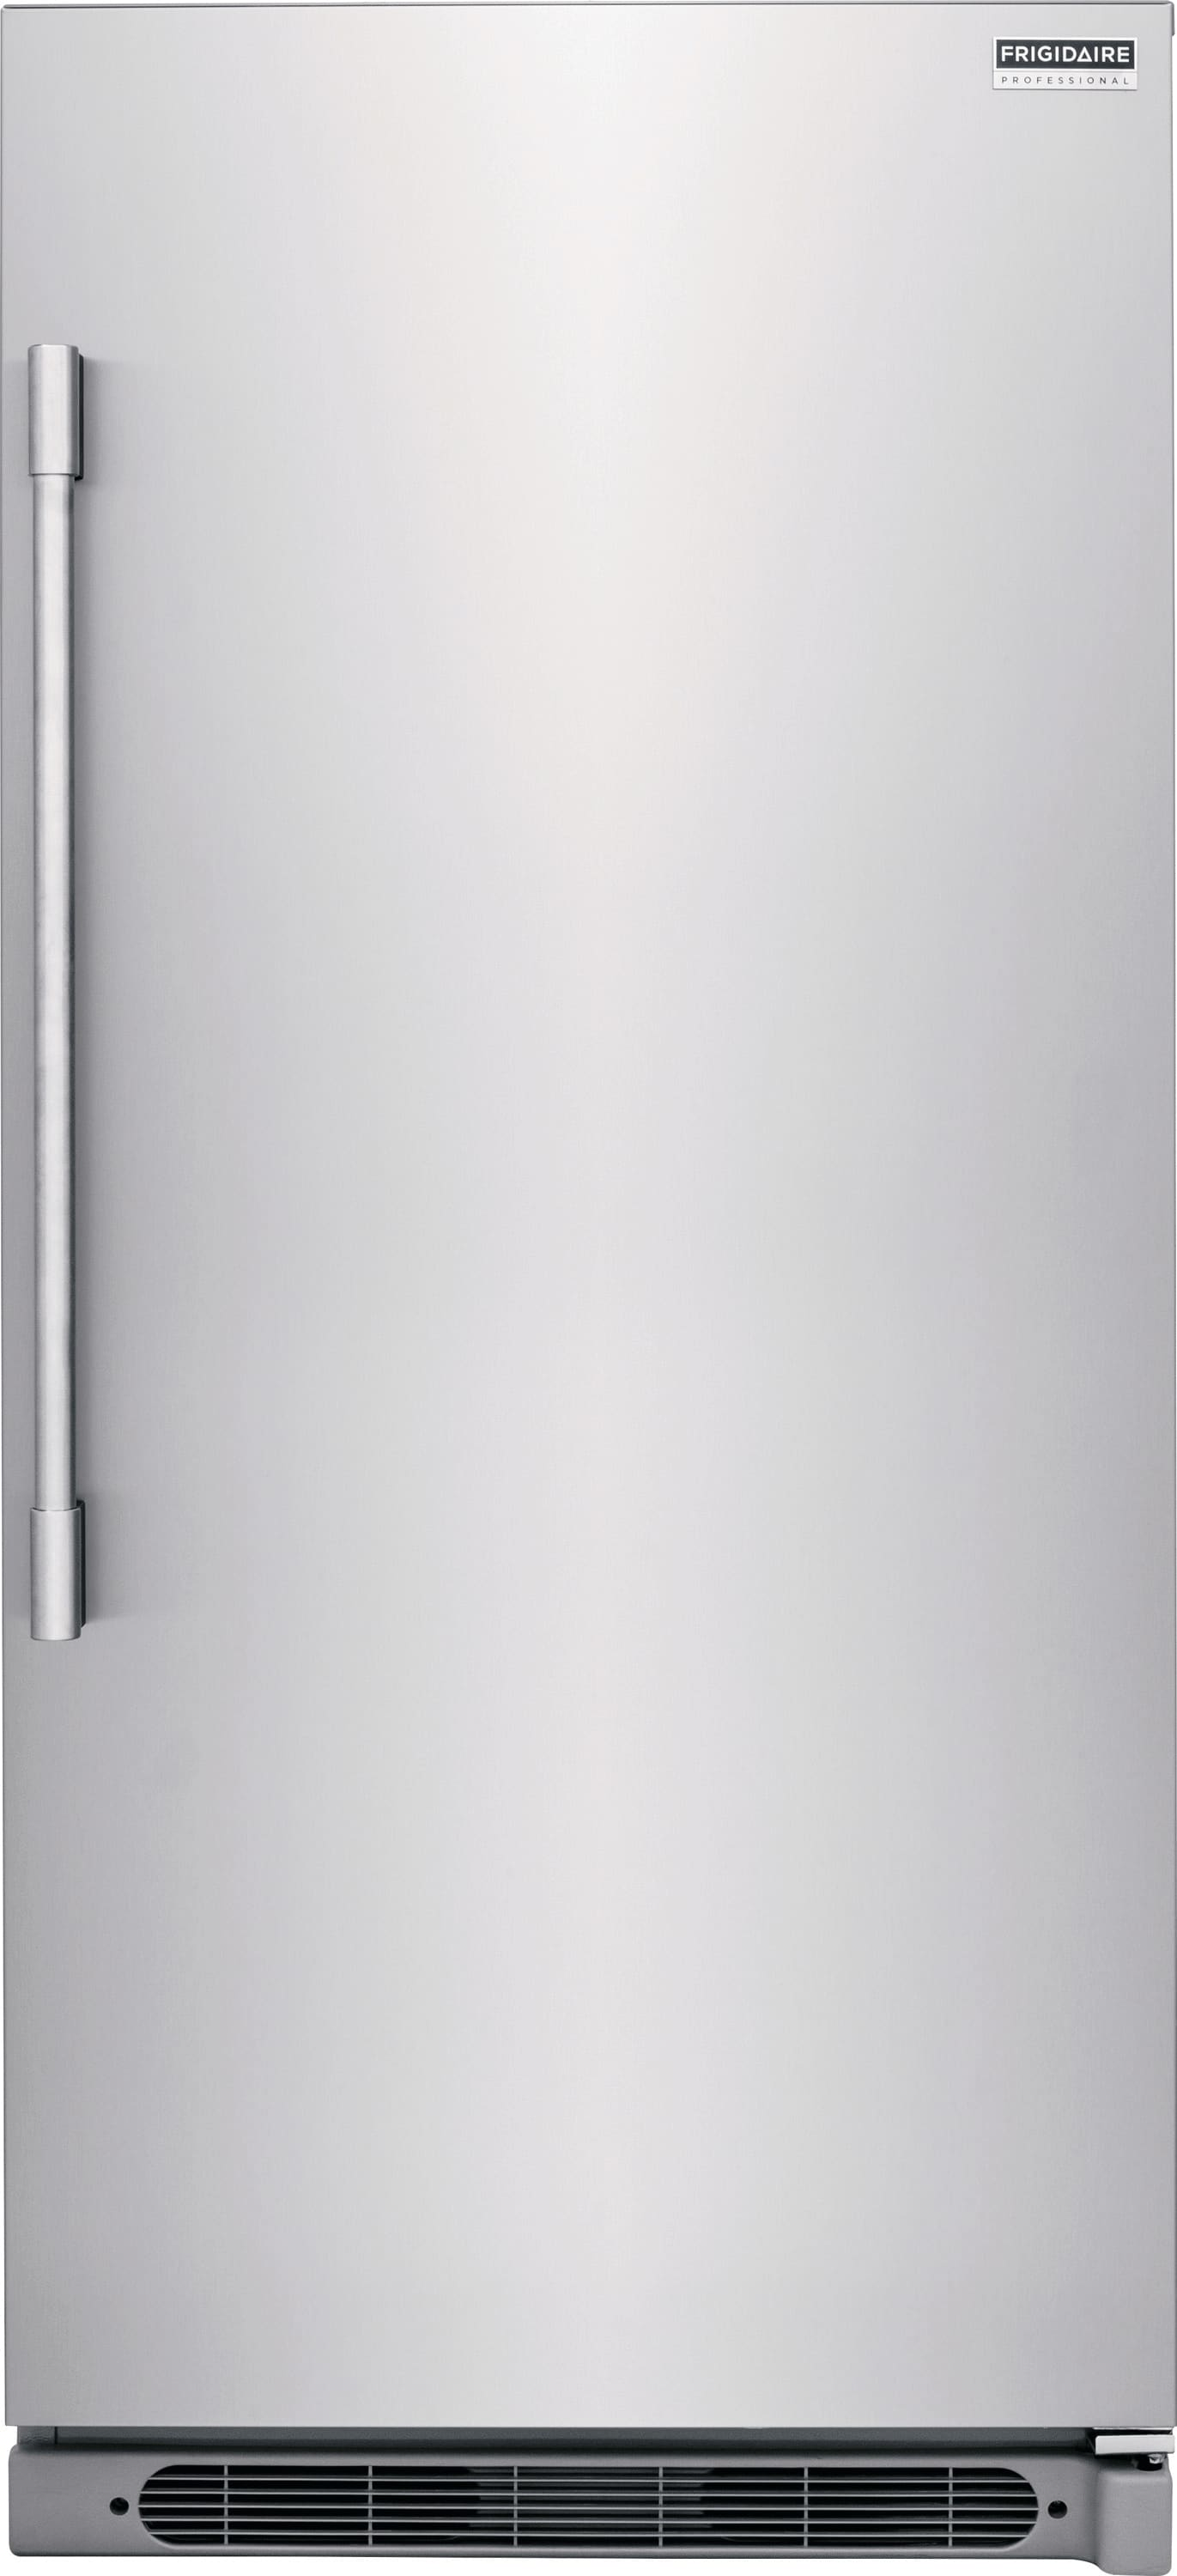 19 Cu. Ft. Single-Door Refrigerator